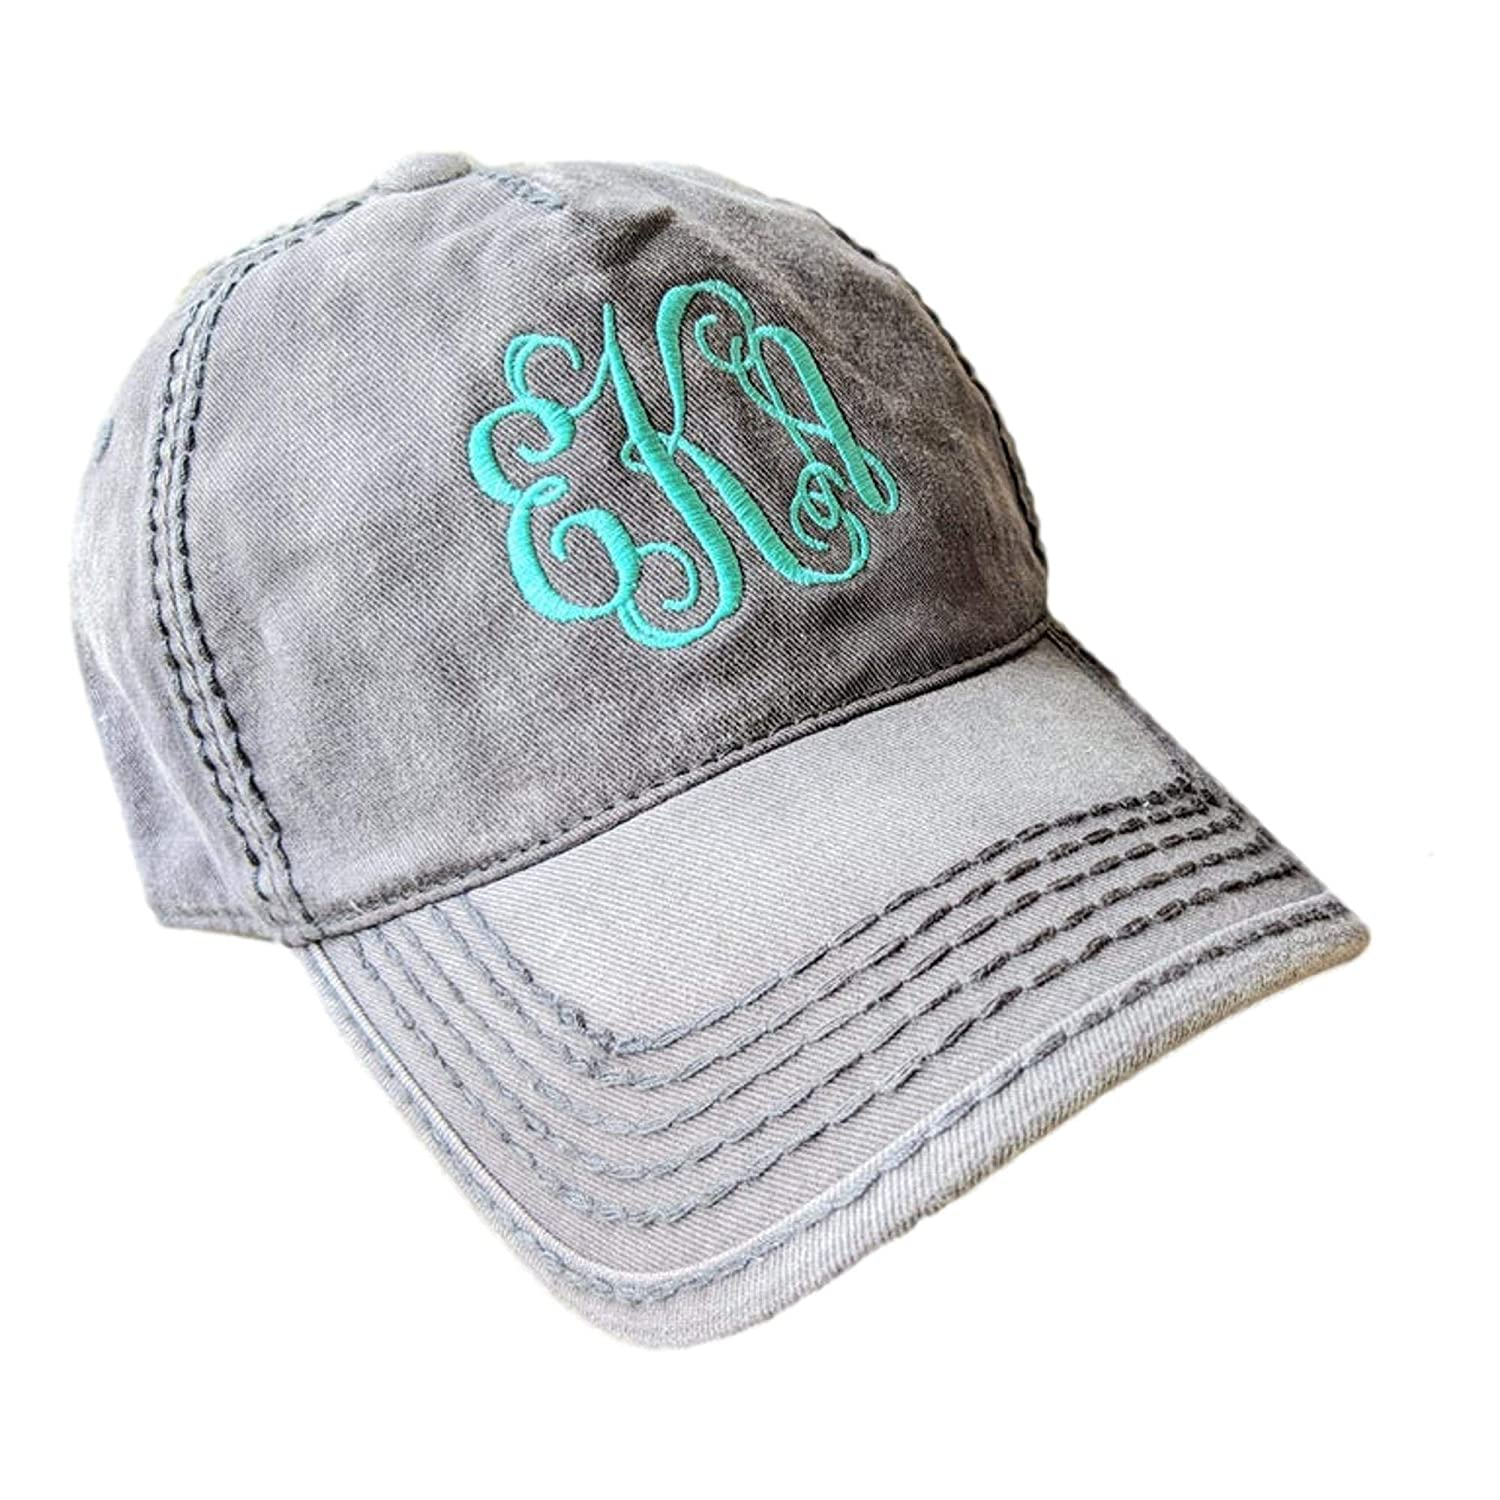 Loaded Lids Customized Women's Limited time cheap sale Cap Outlet SALE High Monogrammed Ponytail